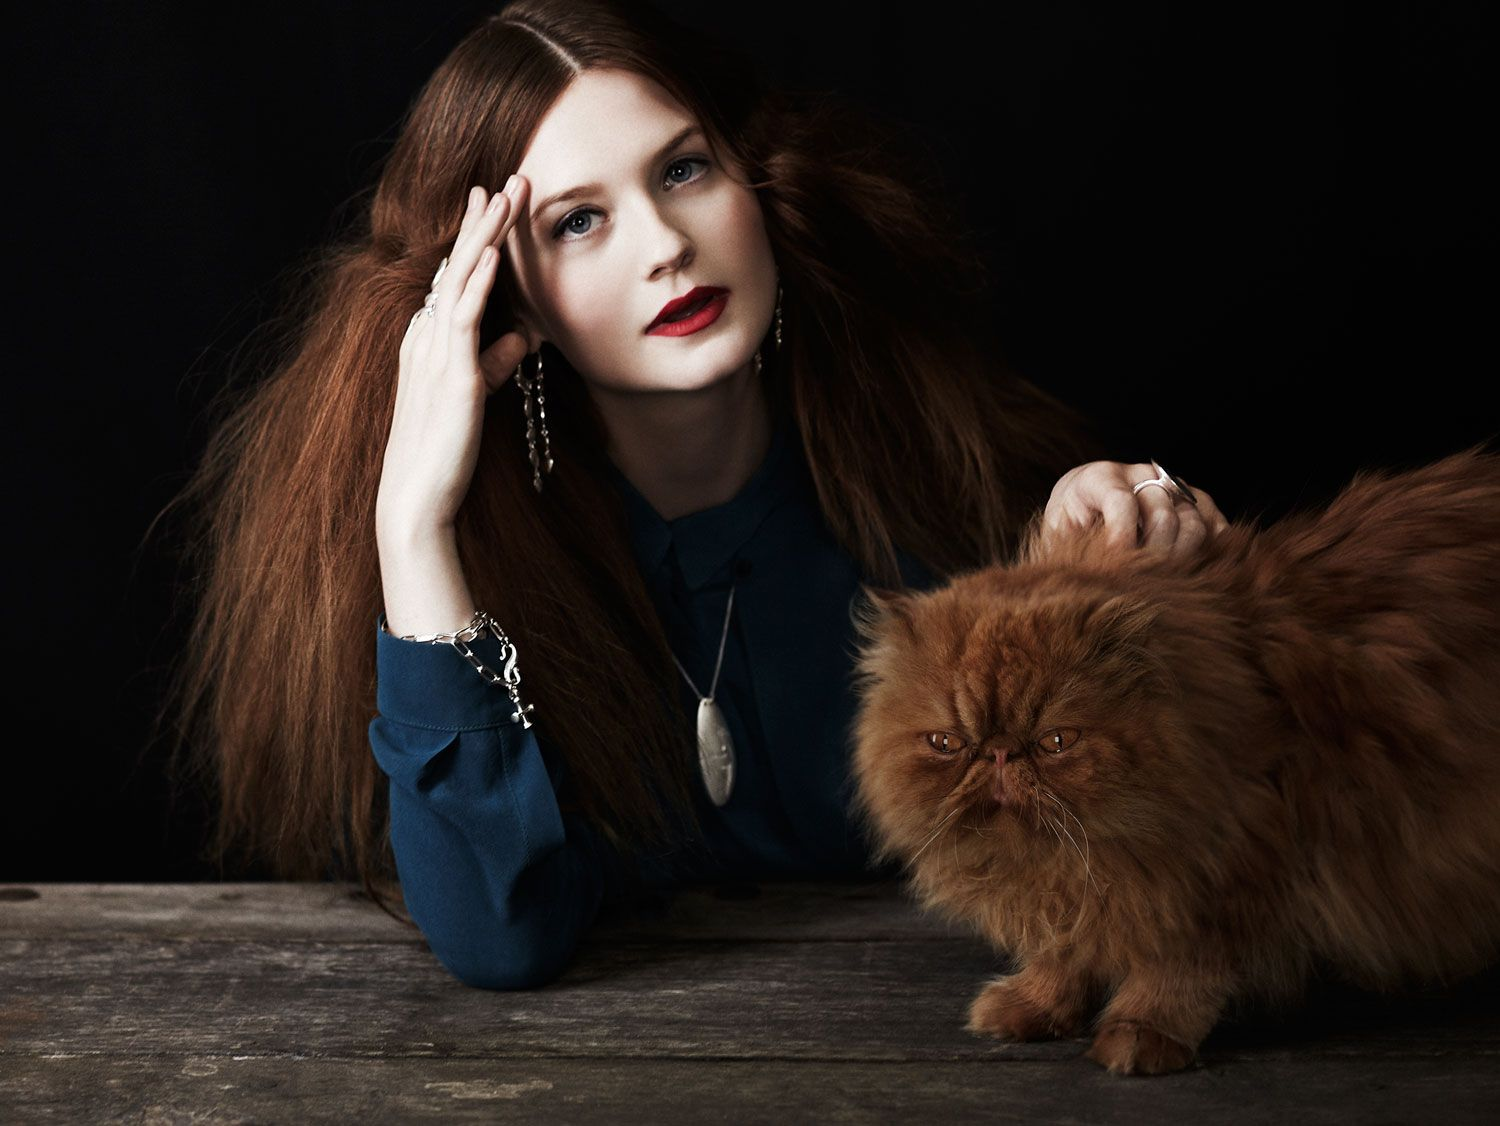 bonnie wright gifbonnie wright 2016, bonnie wright 2017, bonnie wright tumblr, bonnie wright gif, bonnie wright and jamie campbell bower, bonnie wright films, bonnie wright boyfriend, bonnie wright movies, bonnie wright wikipedia, bonnie wright insta, bonnie wright simon hammerstein, bonnie wright fb, bonnie wright wdw, bonnie wright email, bonnie wright 2017 instagram, bonnie wright soles, bonnie wright haircut, bonnie wright happy birthday, bonnie wright instagram official, bonnie wright vegan